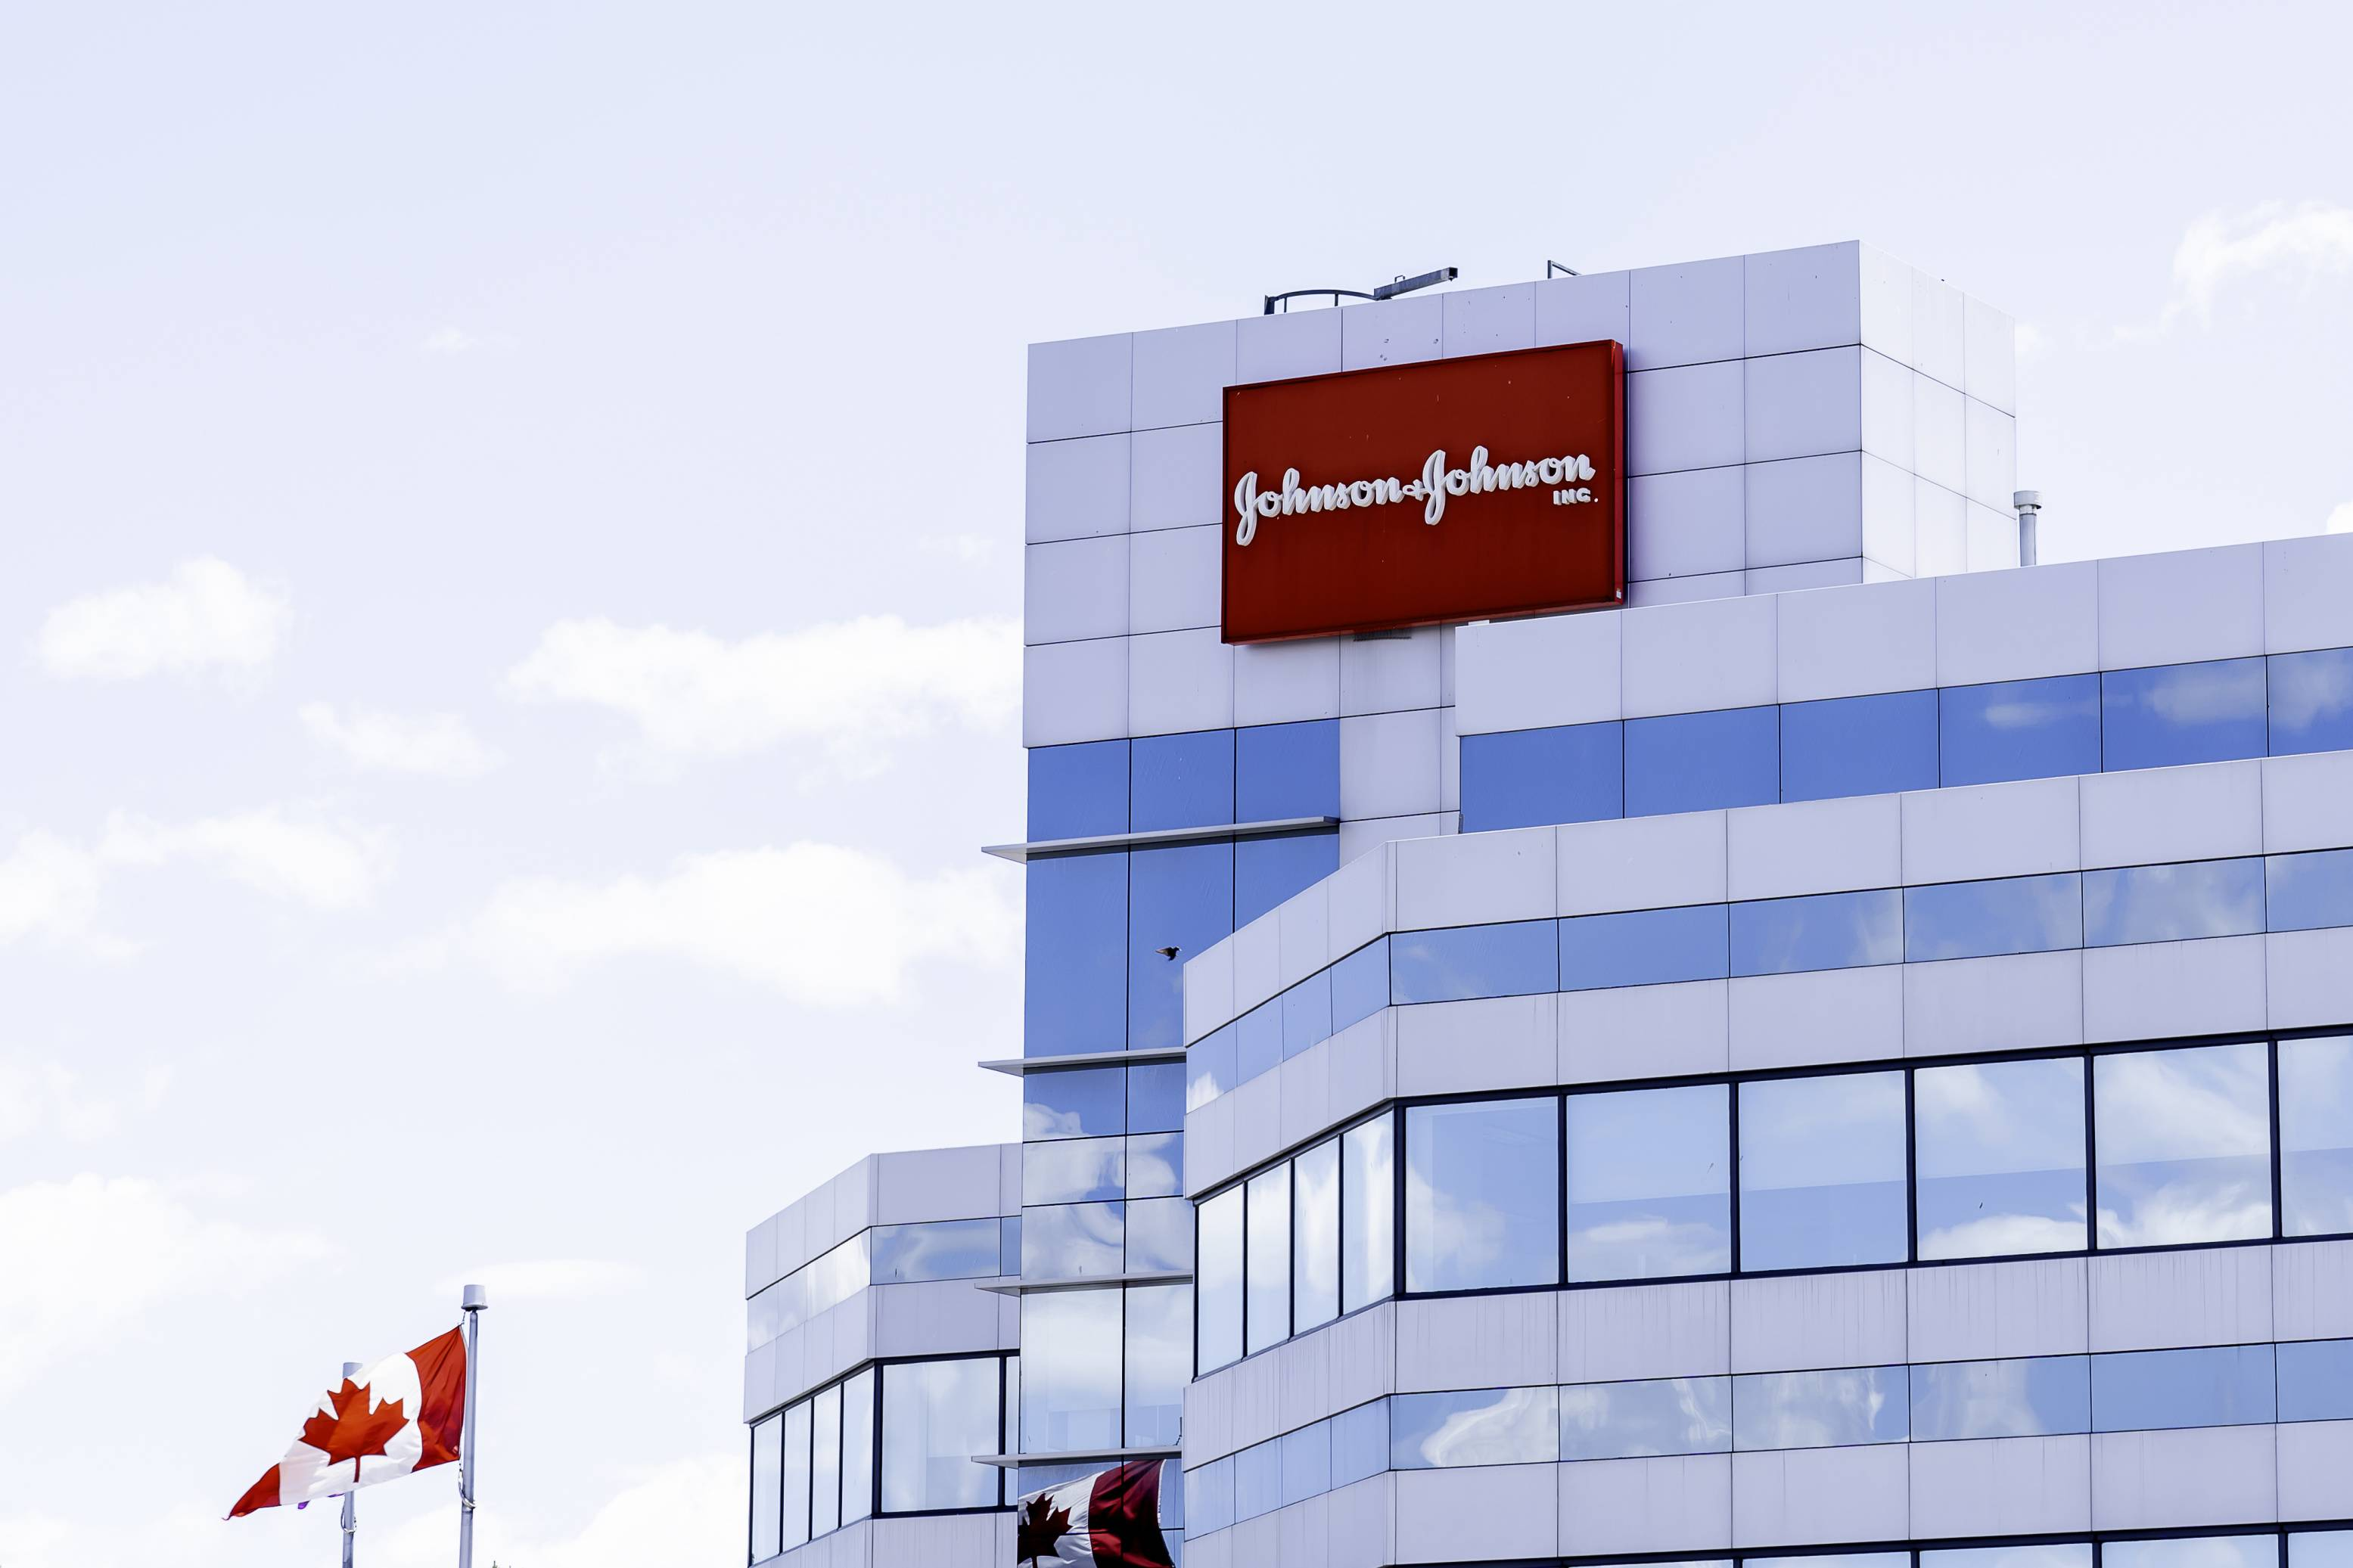 Johnson & Johnson set to acquire Momenta Pharmaceuticals – here's what investors need to know